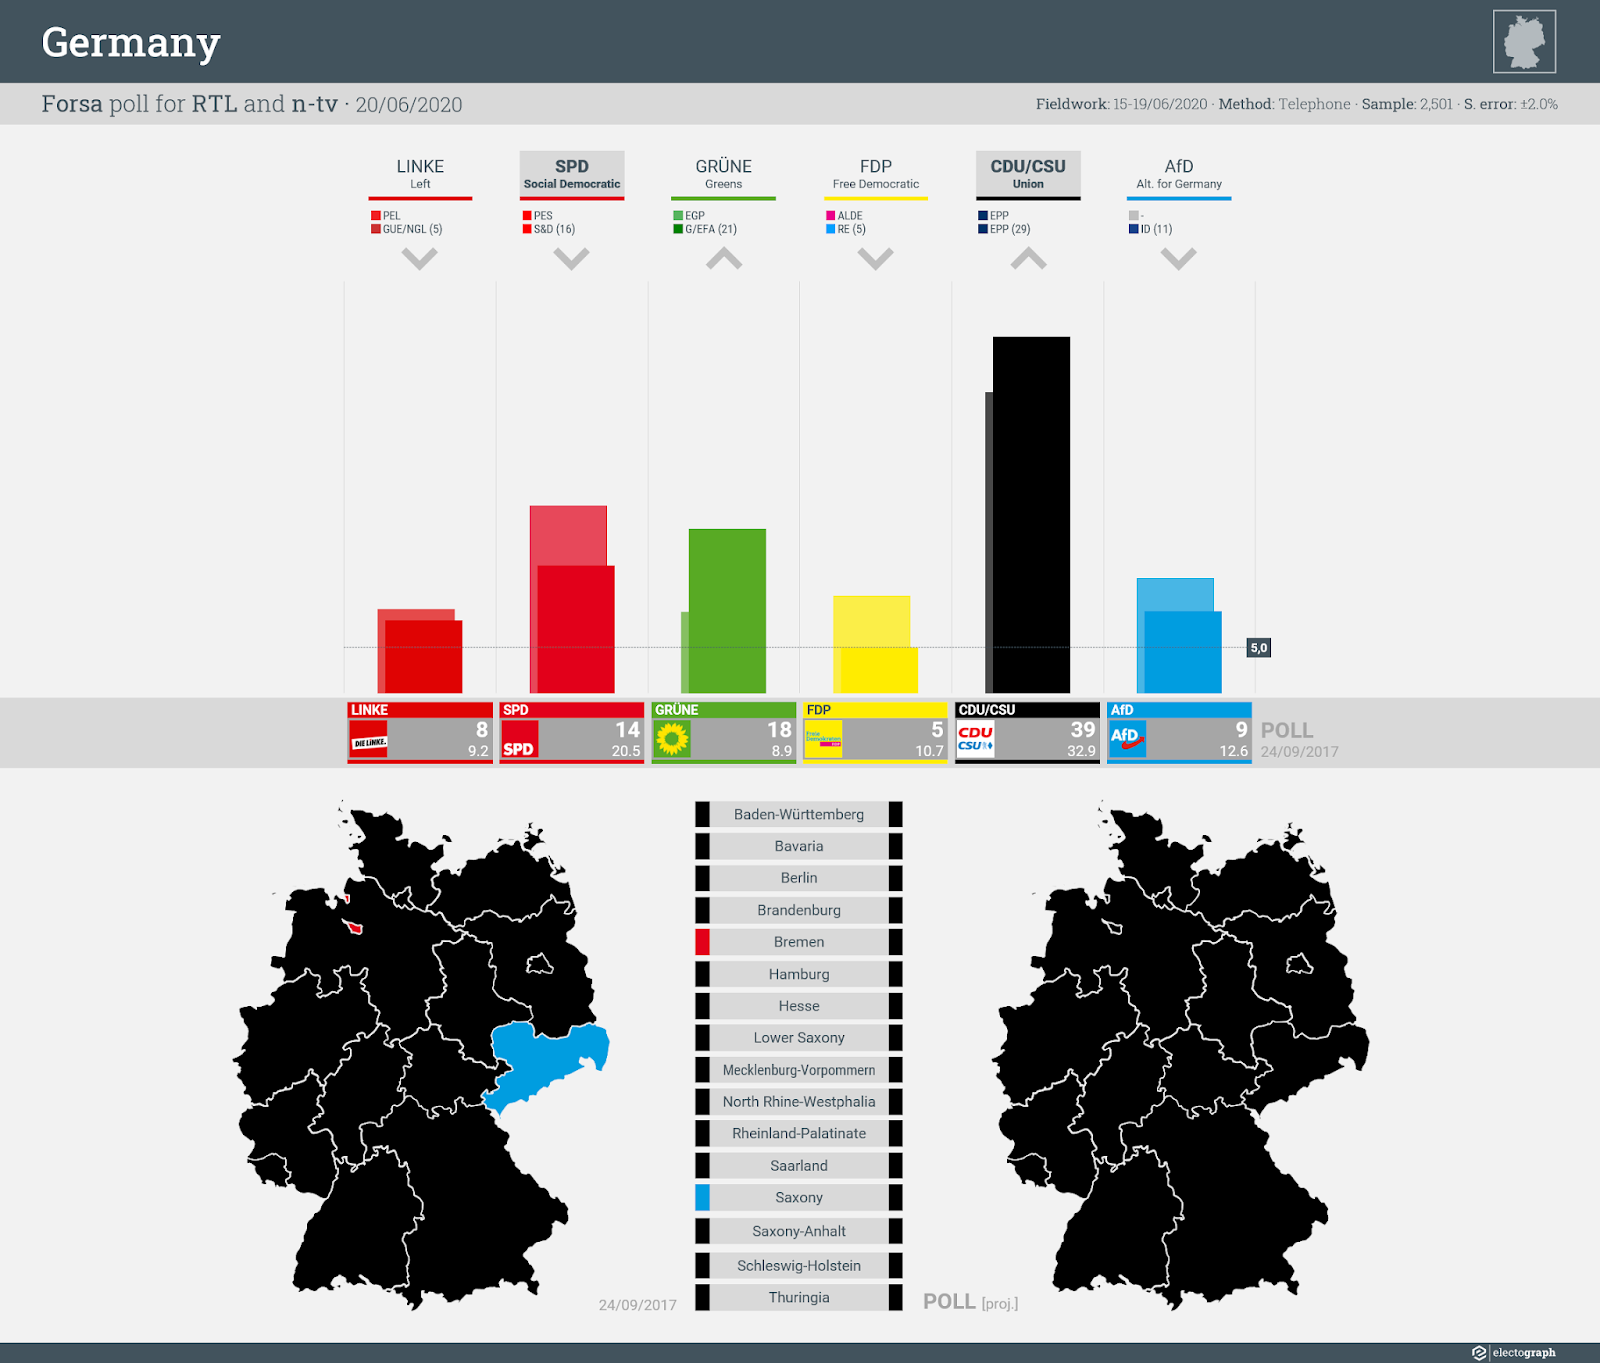 GERMANY: Forsa poll chart for RTL and n-tv, 20 June 2020